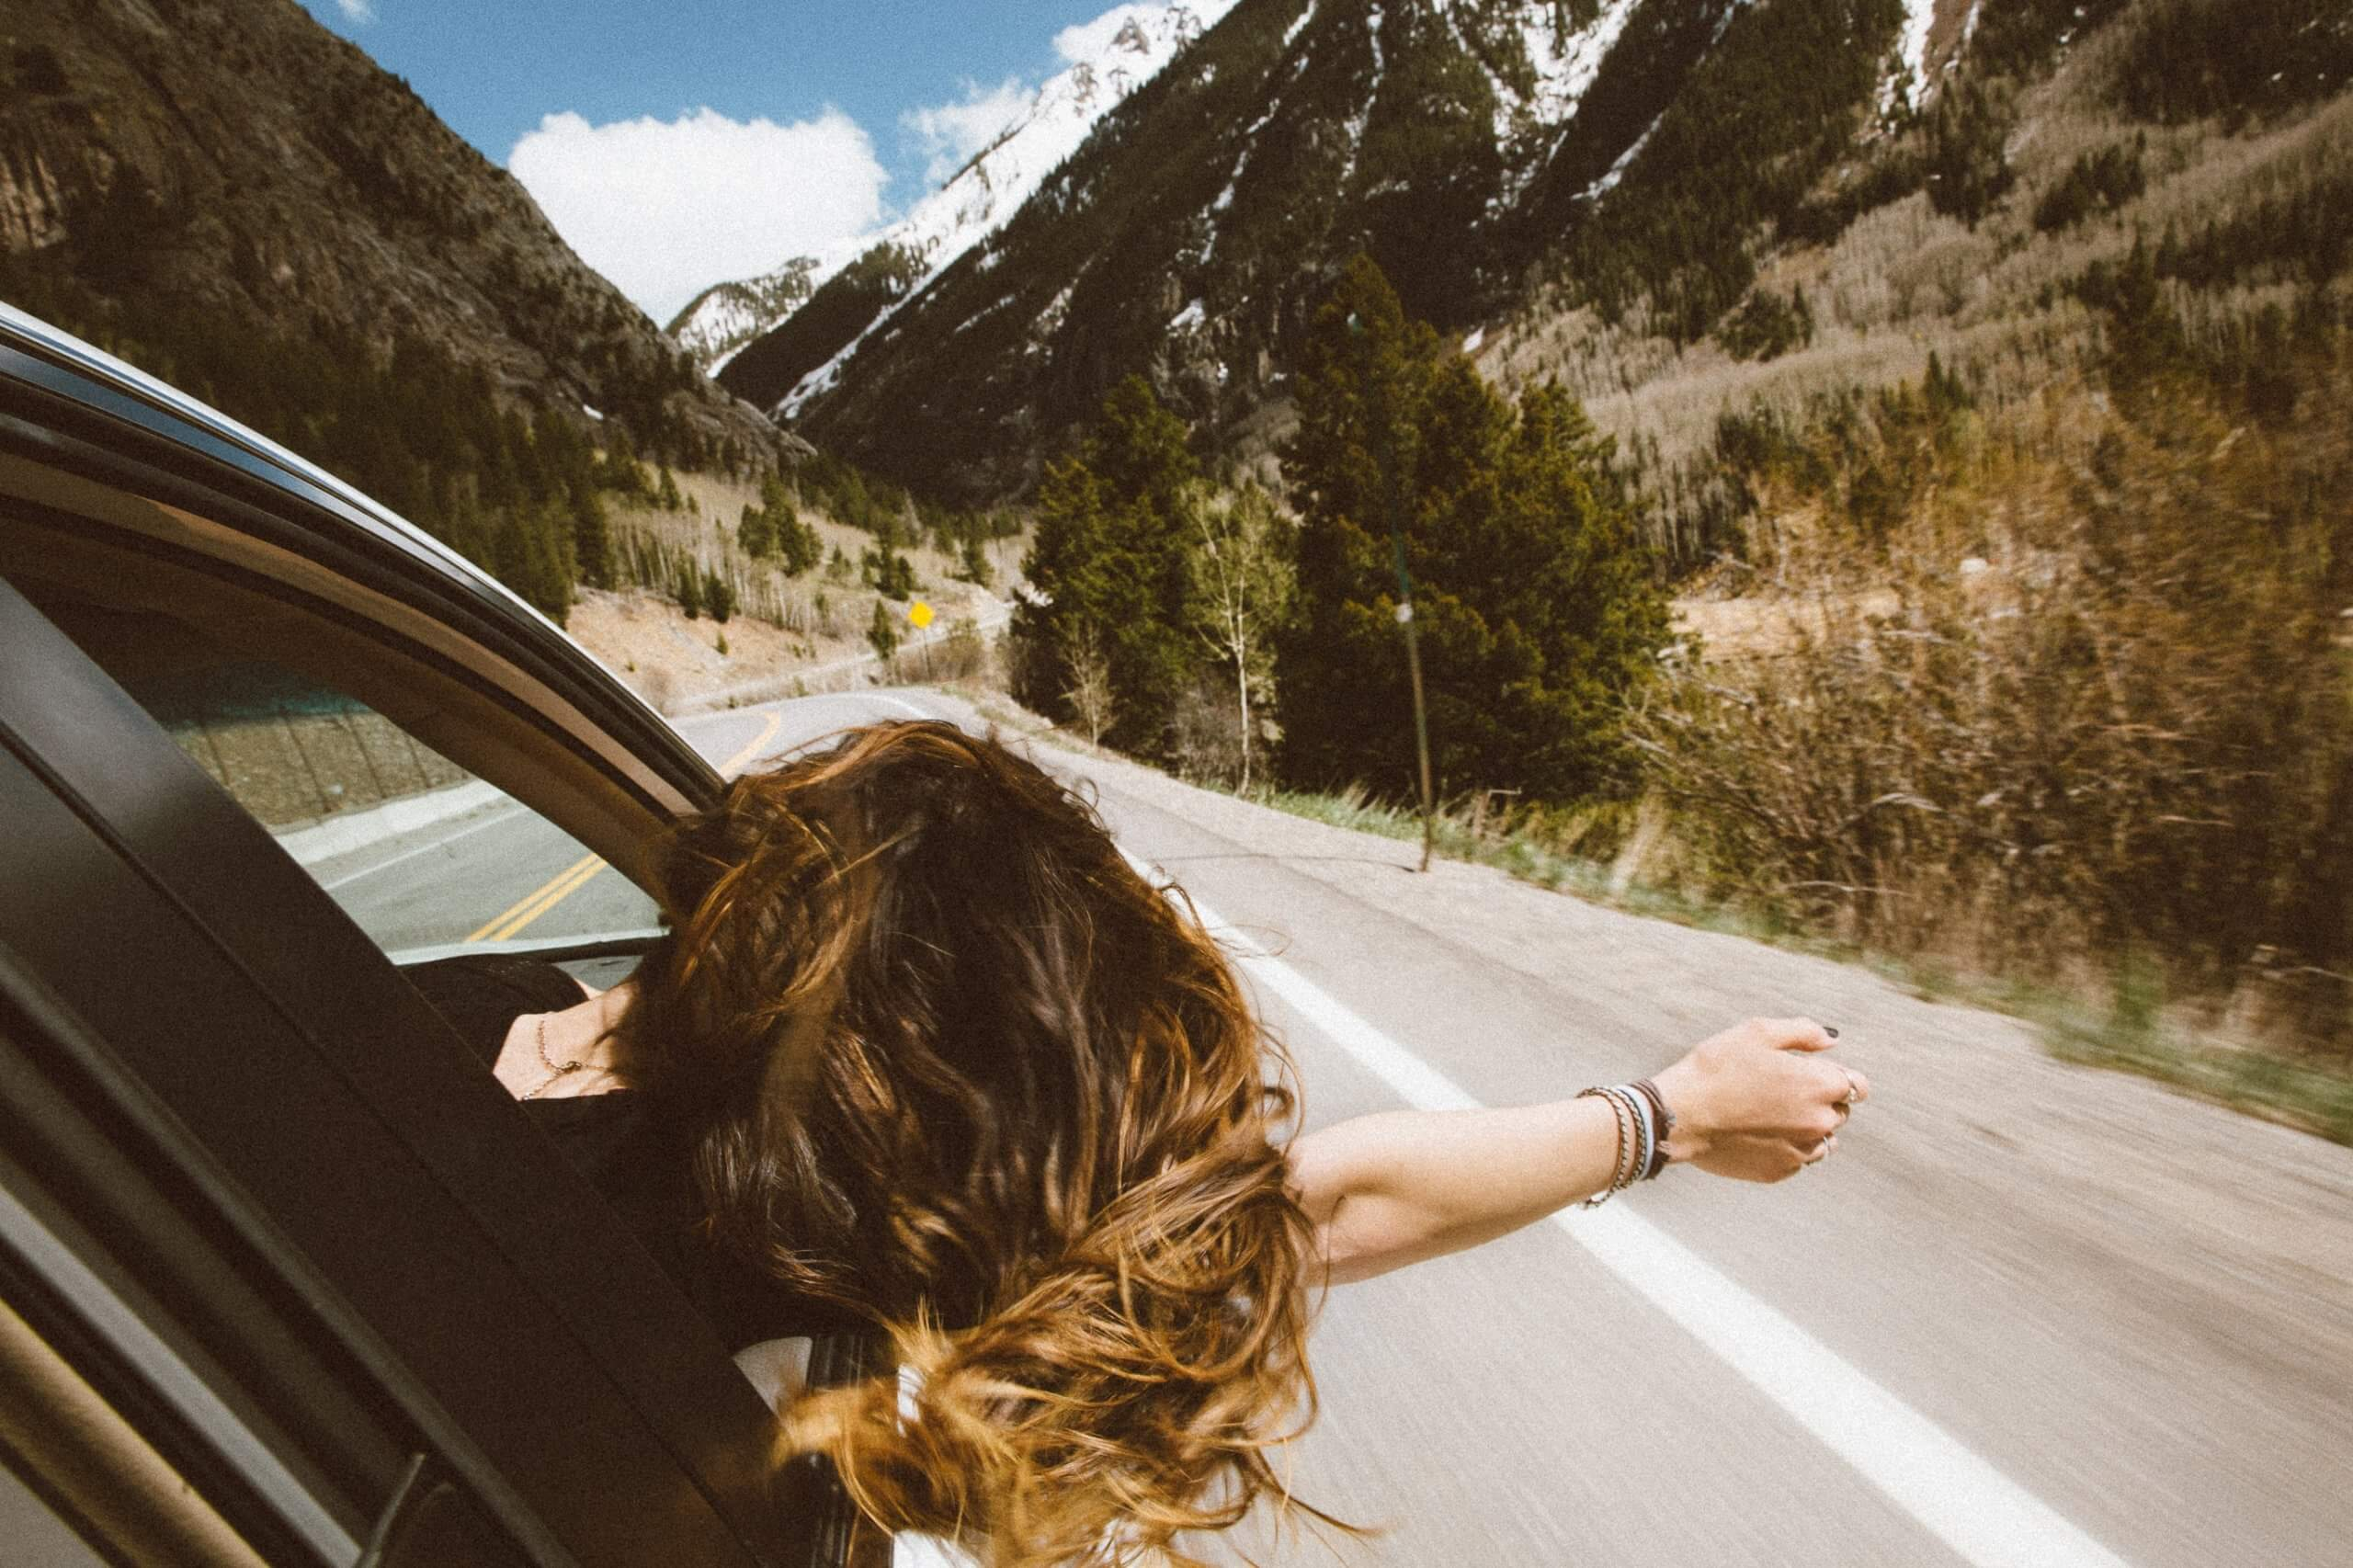 female passenger sticking her head out of car window on sunny day driving down mountain road